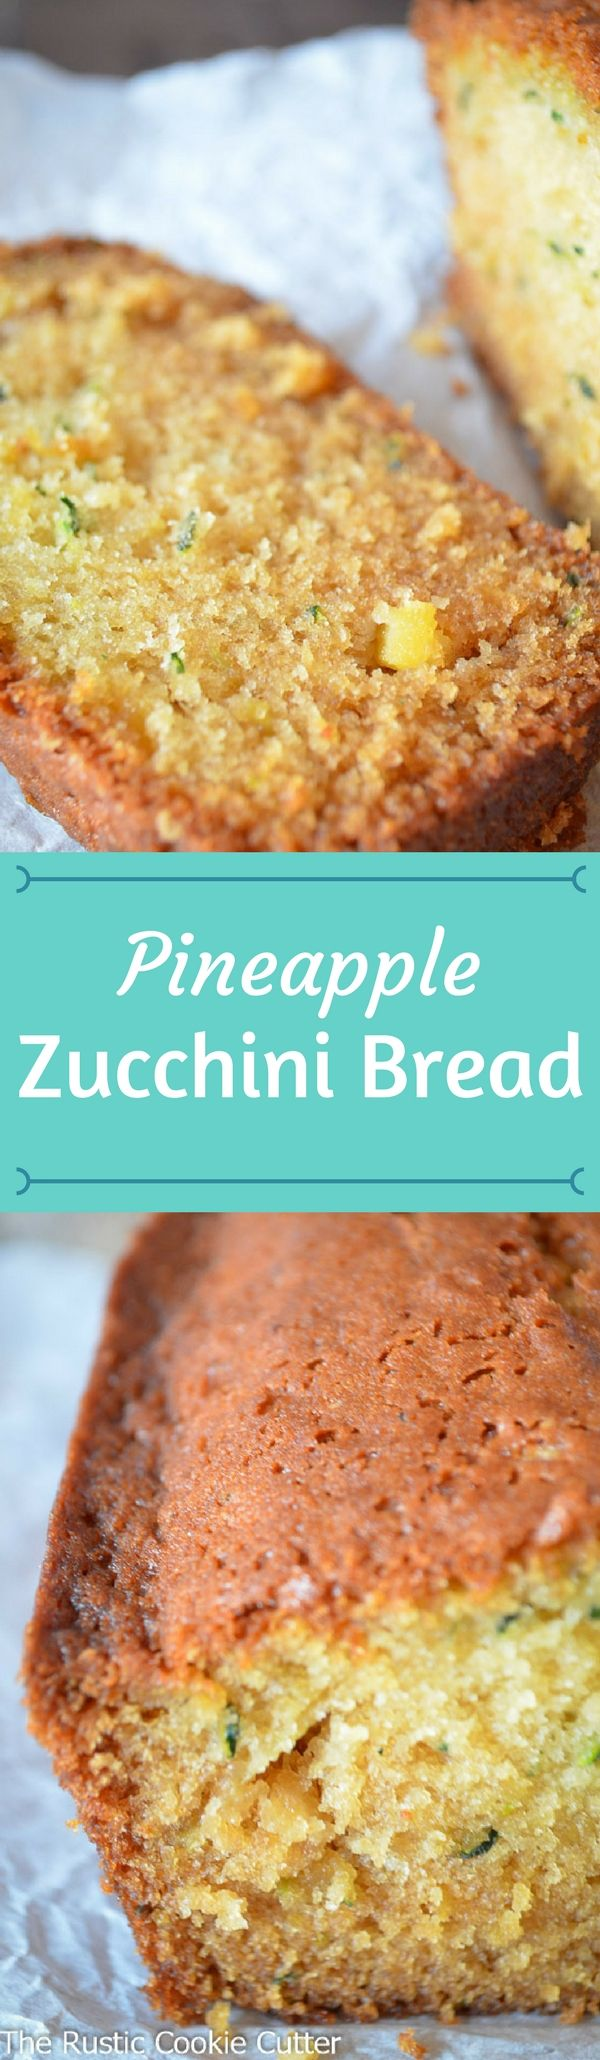 How to make Disappearing Pineapple Zucchini Quick Bread! - So good it disappears right off the cooling rack!